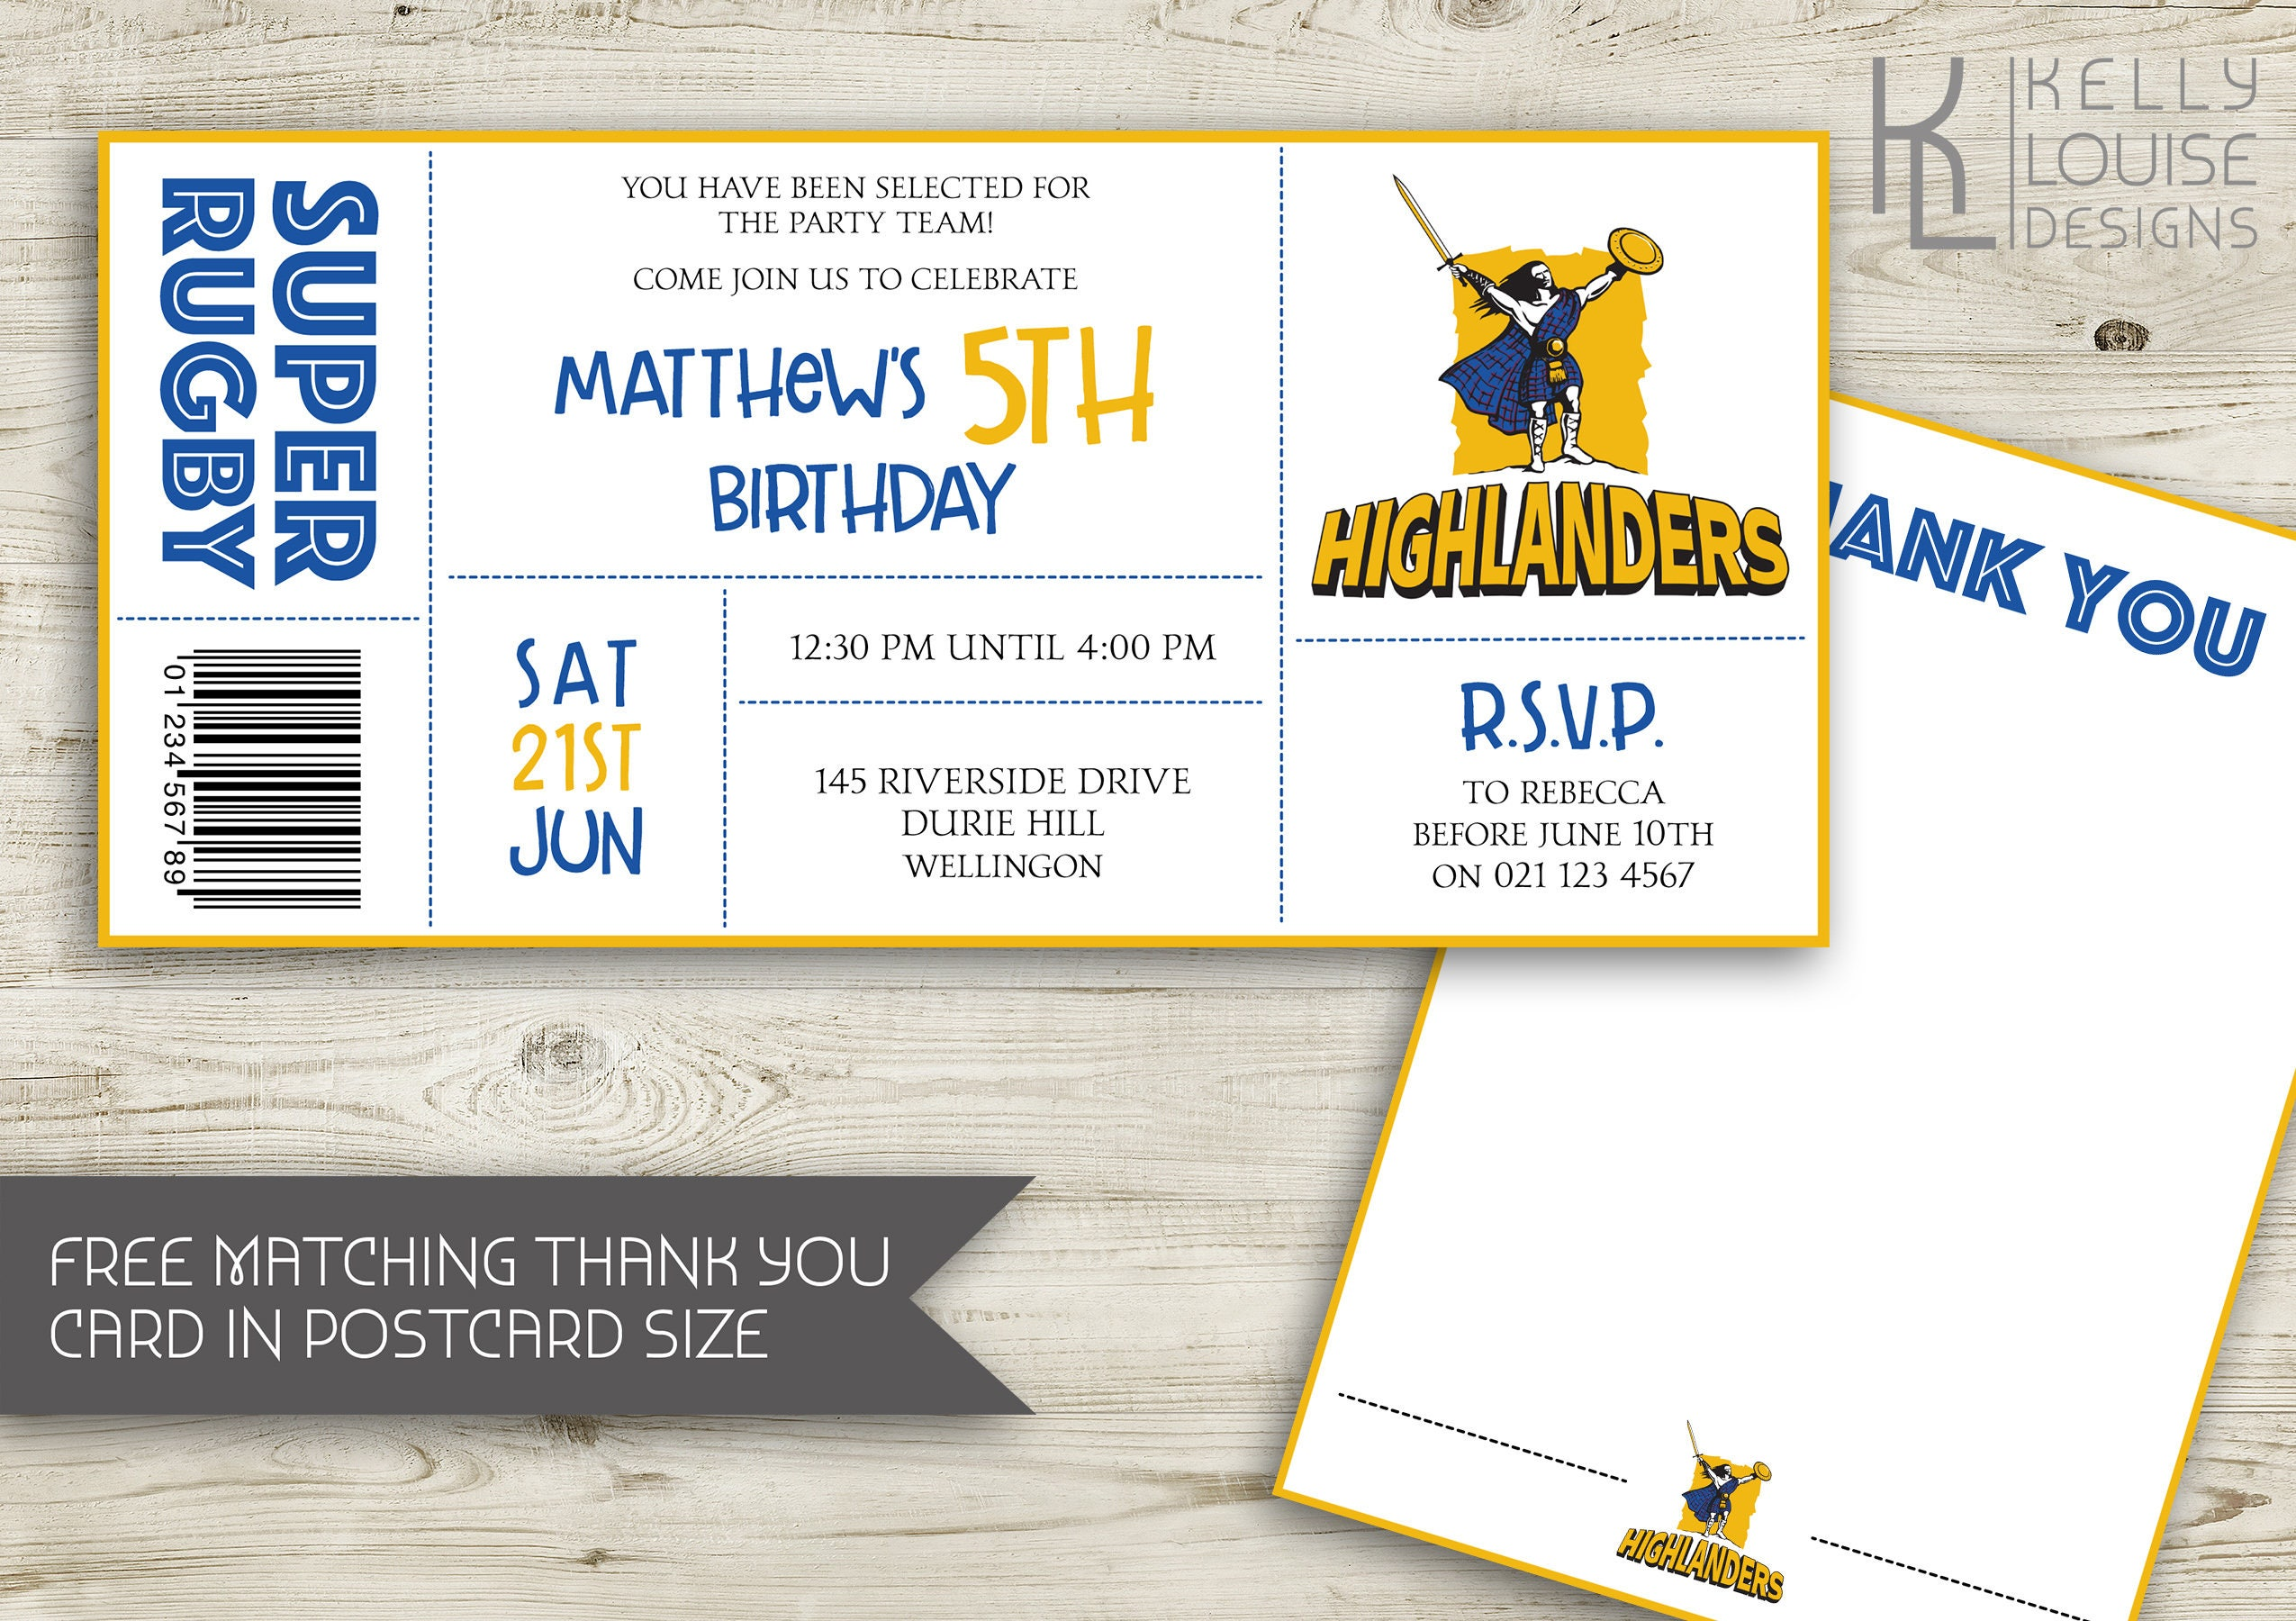 Highlanders Birthday Invitation Rugby Birthday Party - Birthday invitation nz